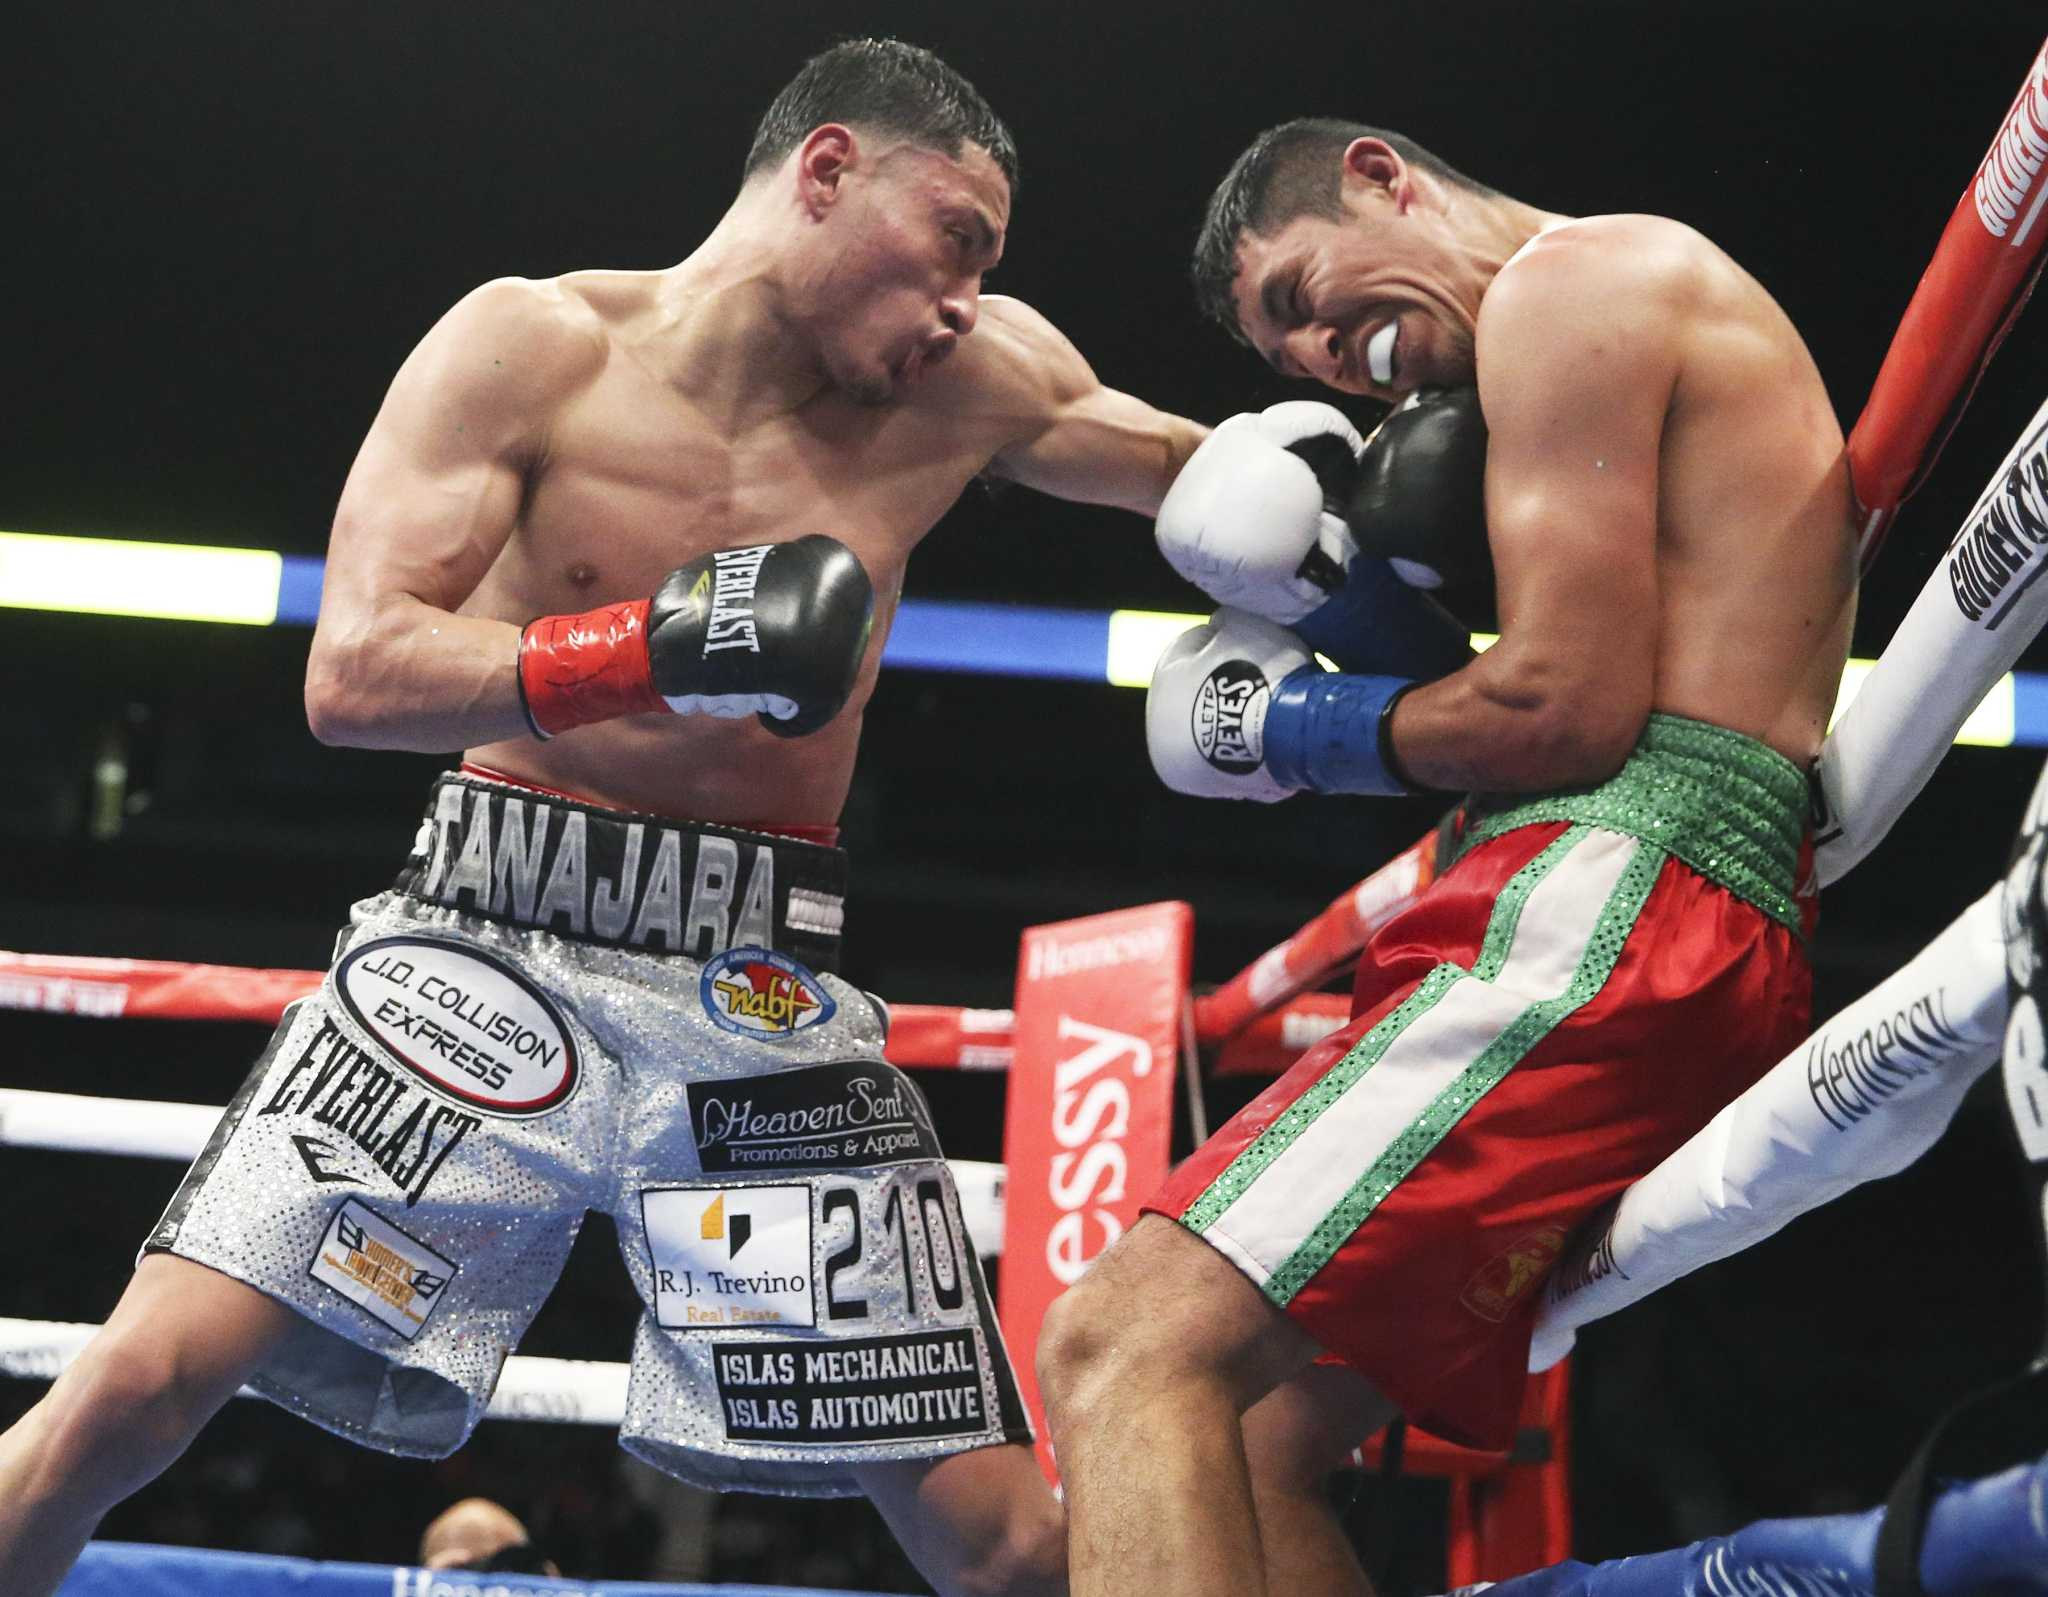 Trainer: San Antonio fighters Hector Tanajara, Josh Franco shine ...